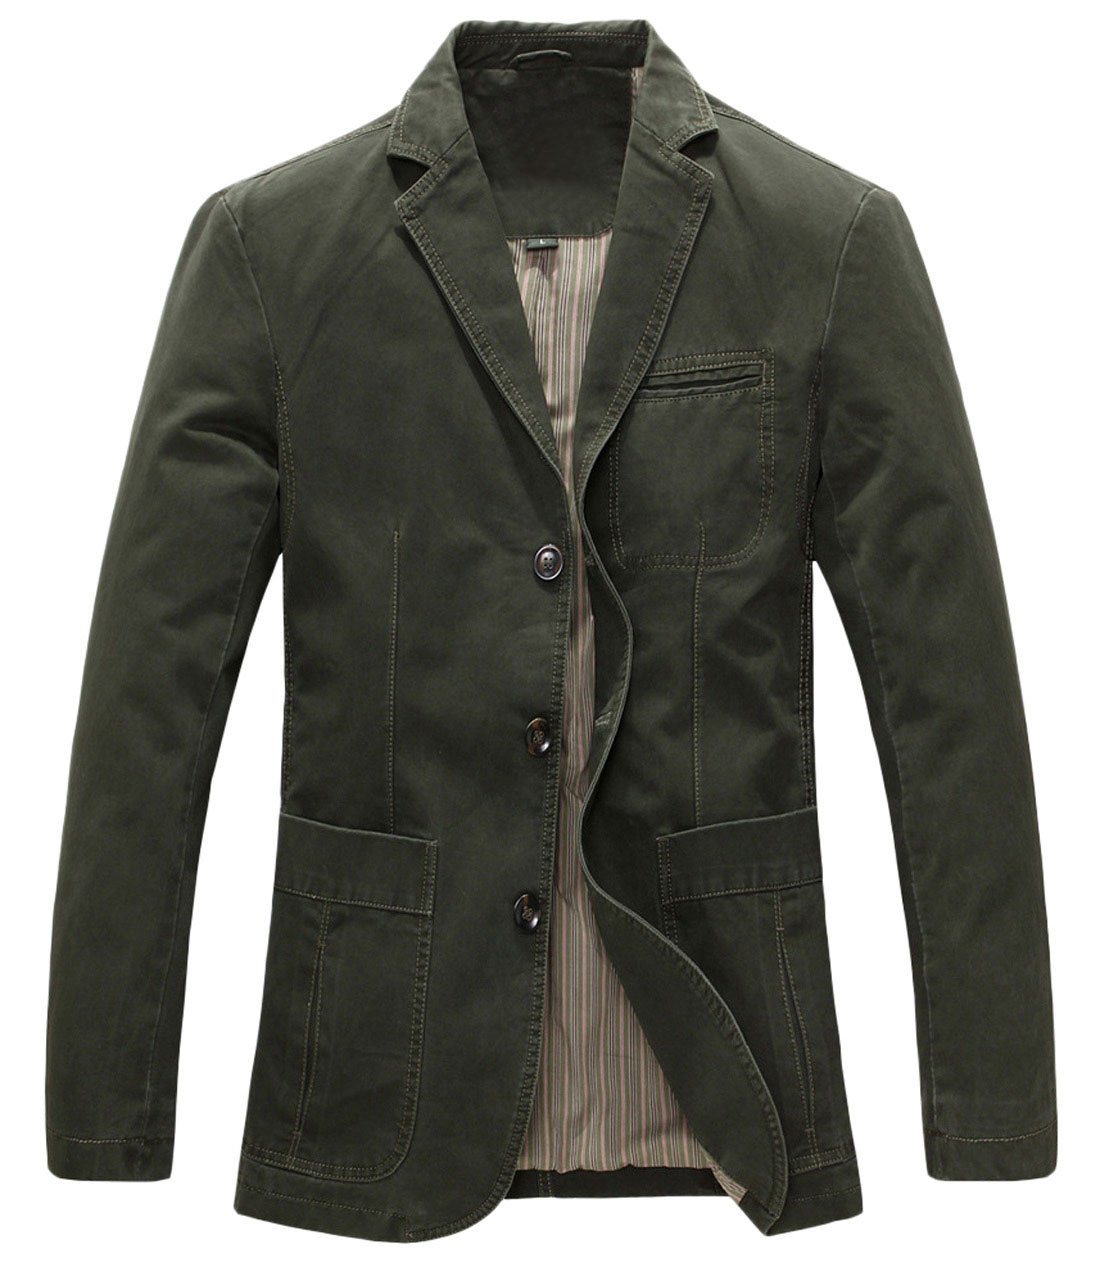 Chouyatou Men's Casual Three-Button Stripe Lined Cotton Twill Suit Jacket X-Large Army Green